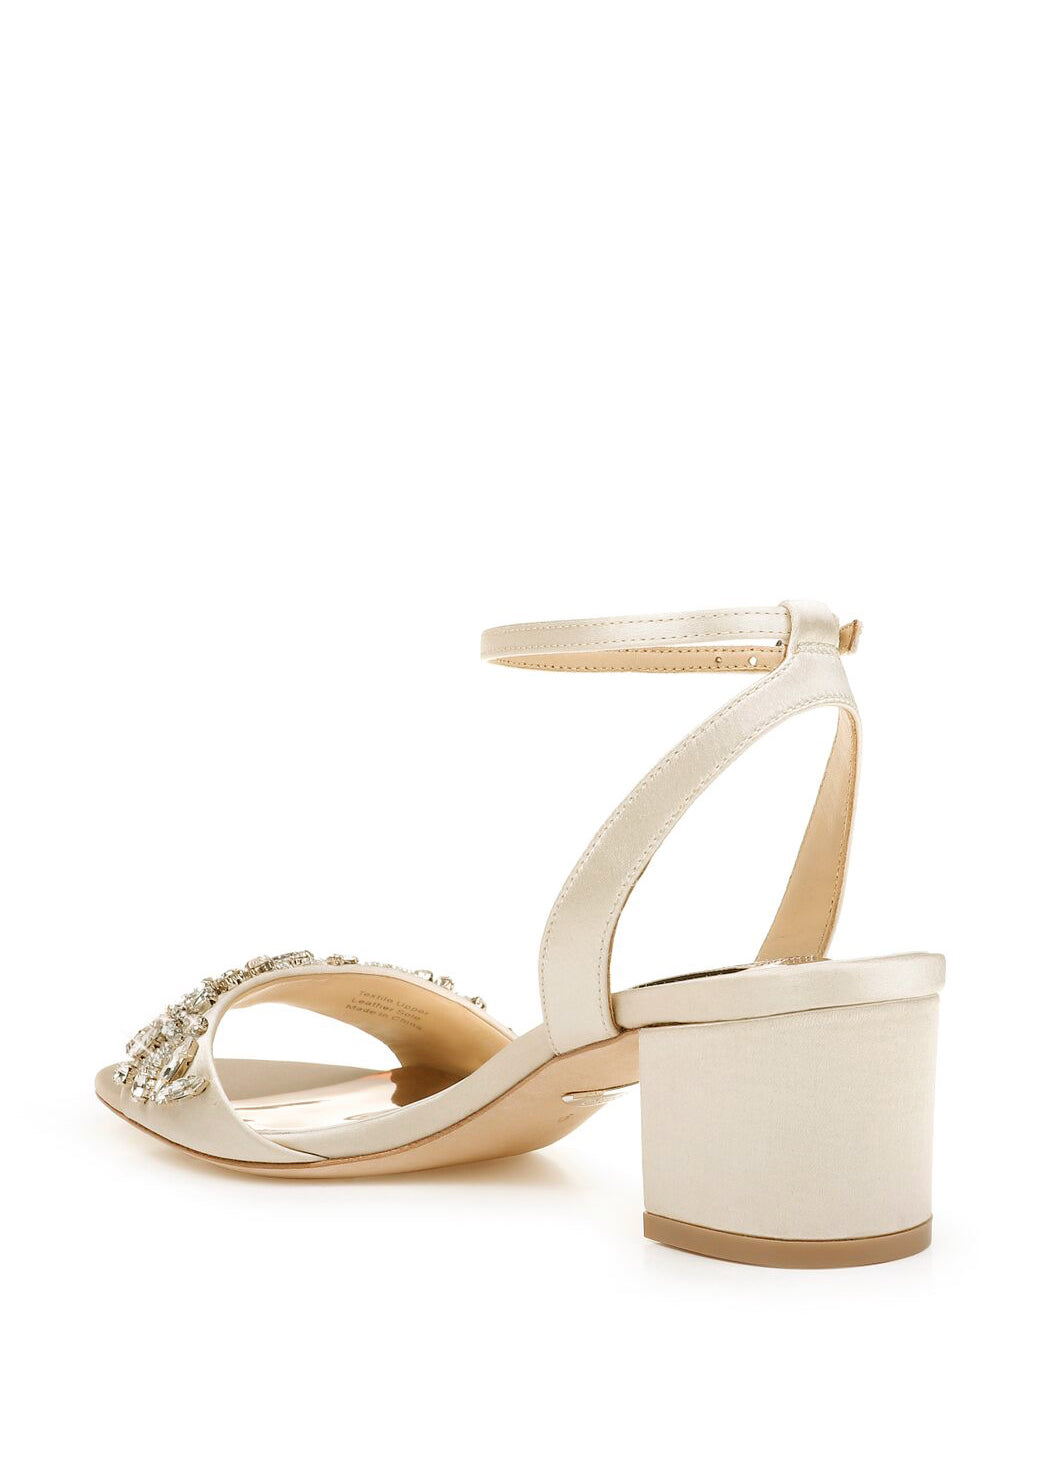 Ivanna - Last Pair, Shoes, Badgley Mischka - Eternal Bridal